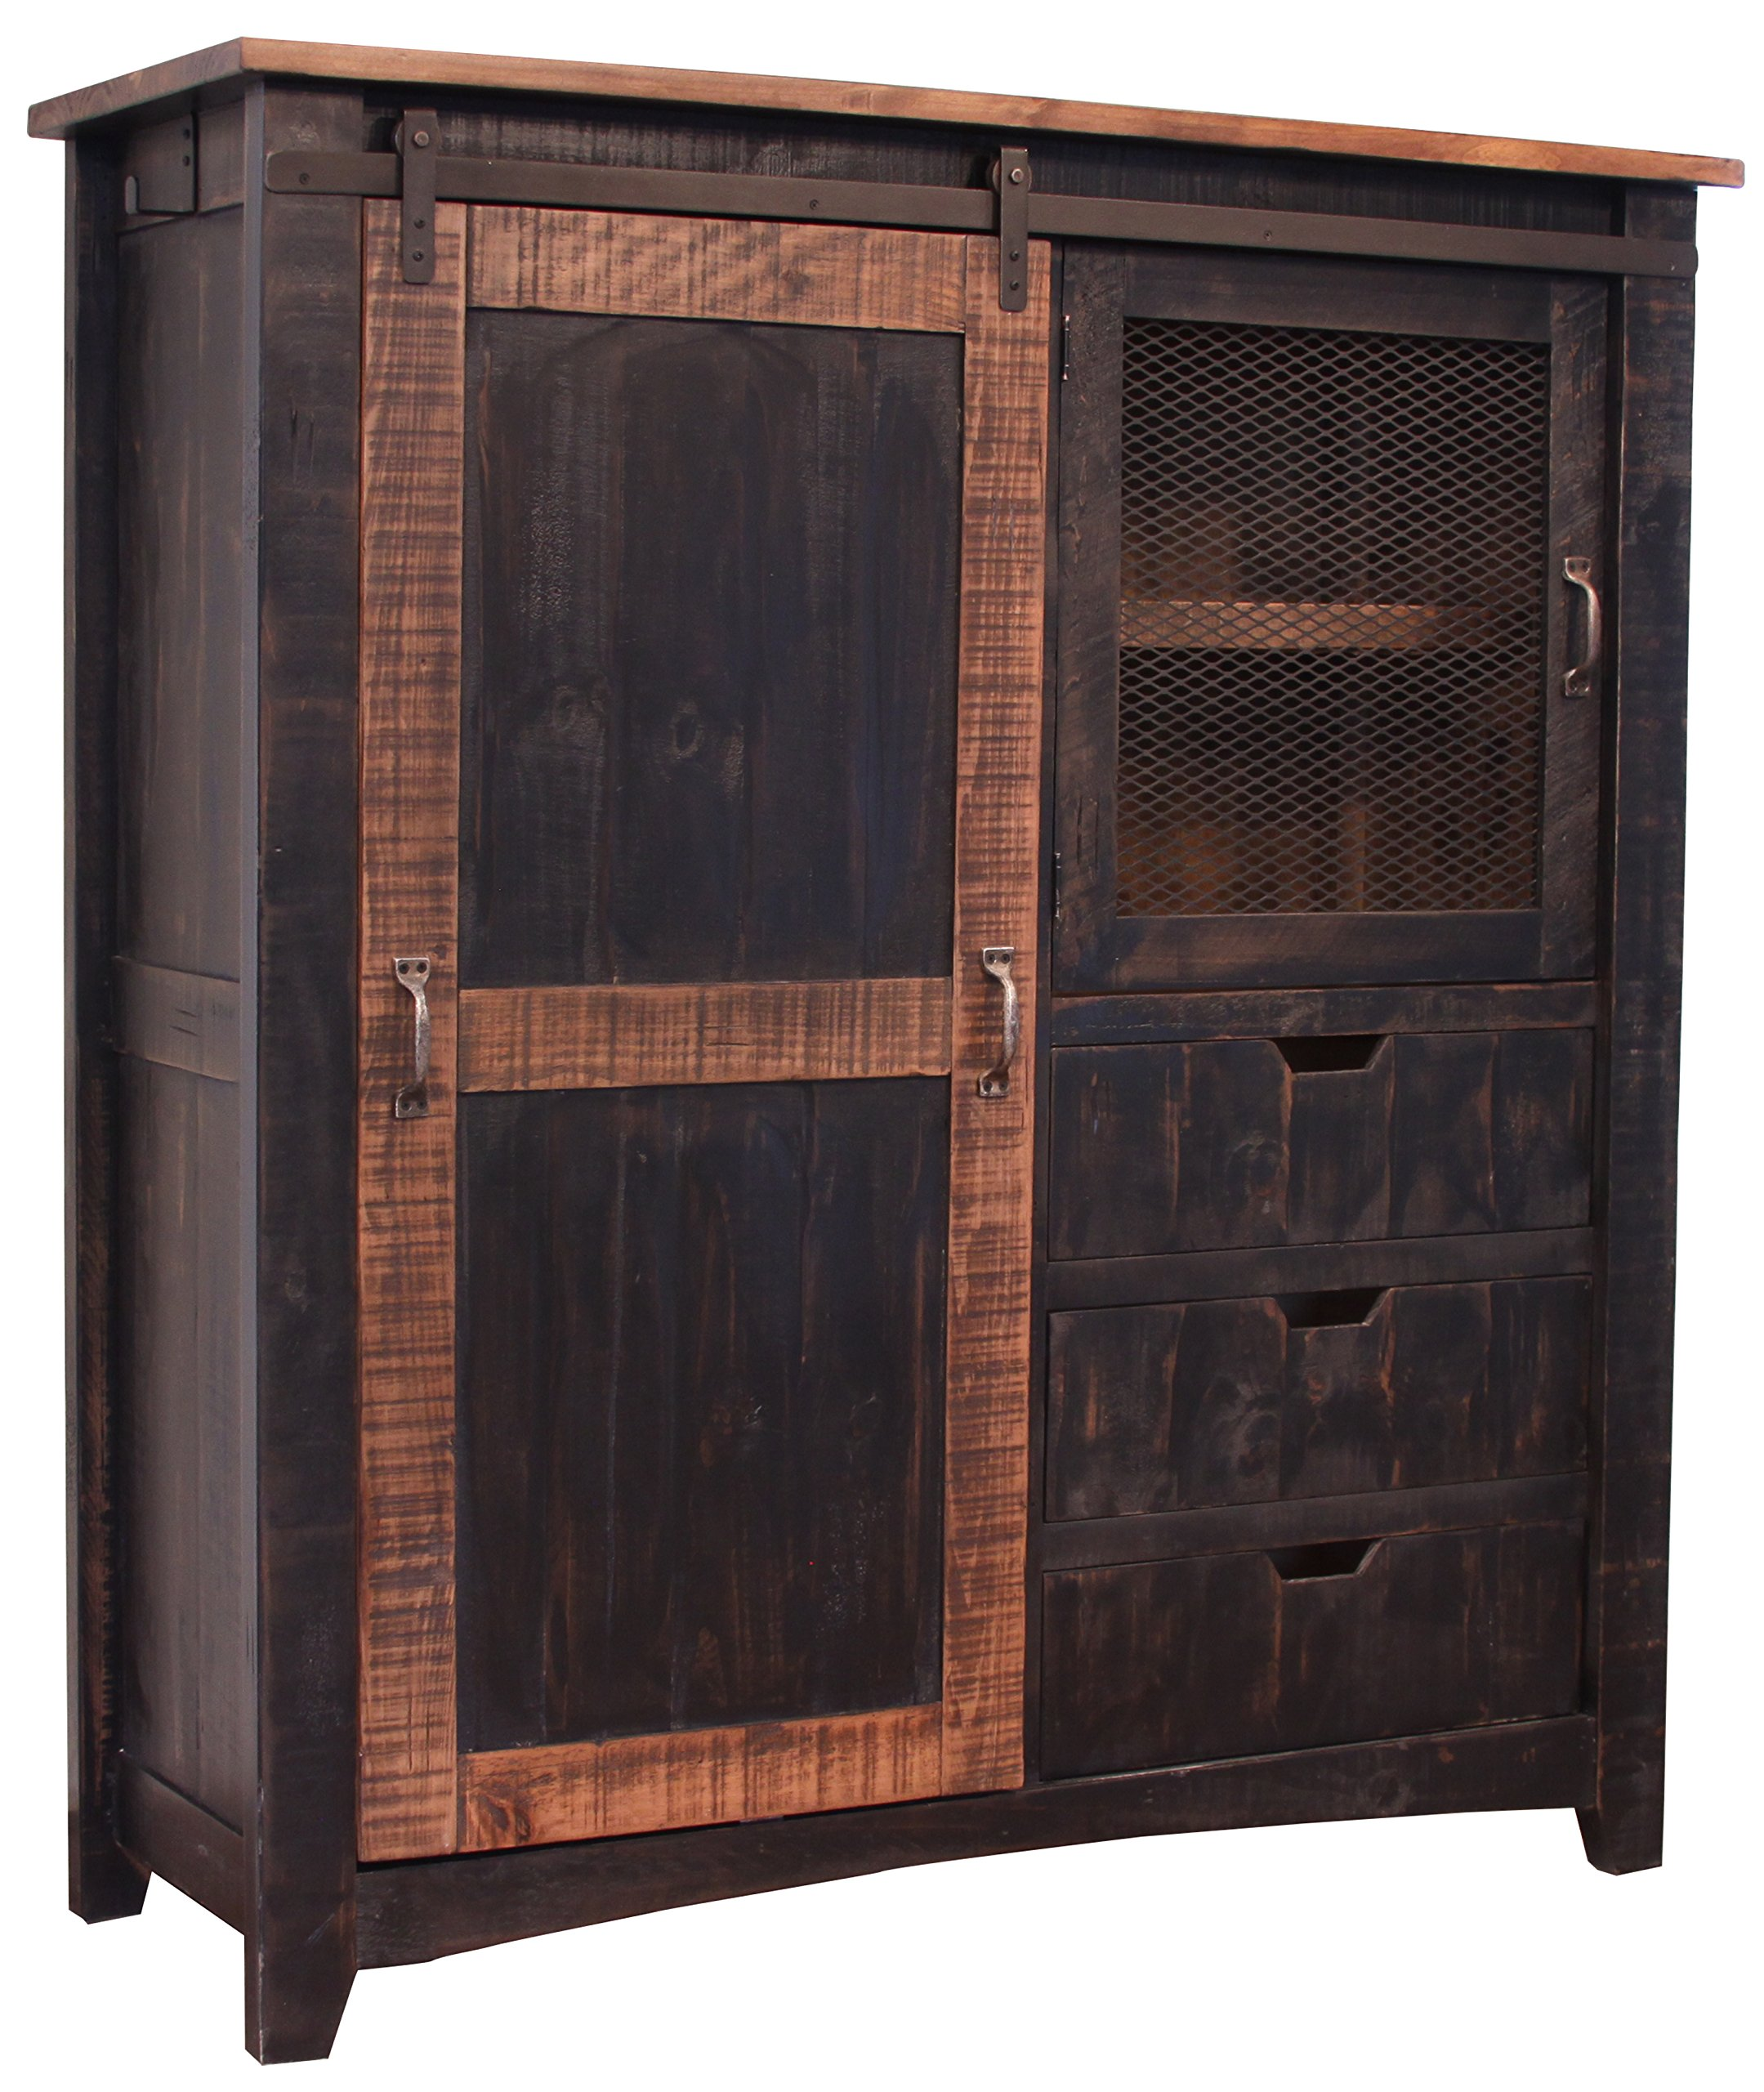 Distressed Black Sturdy Solid Wood Anton Sliding Barn Door Gentlemans Chest Armoire. Arrives Fully Assembled And Features Upgraded Dovetail Drawers With Ball Bearing Glides